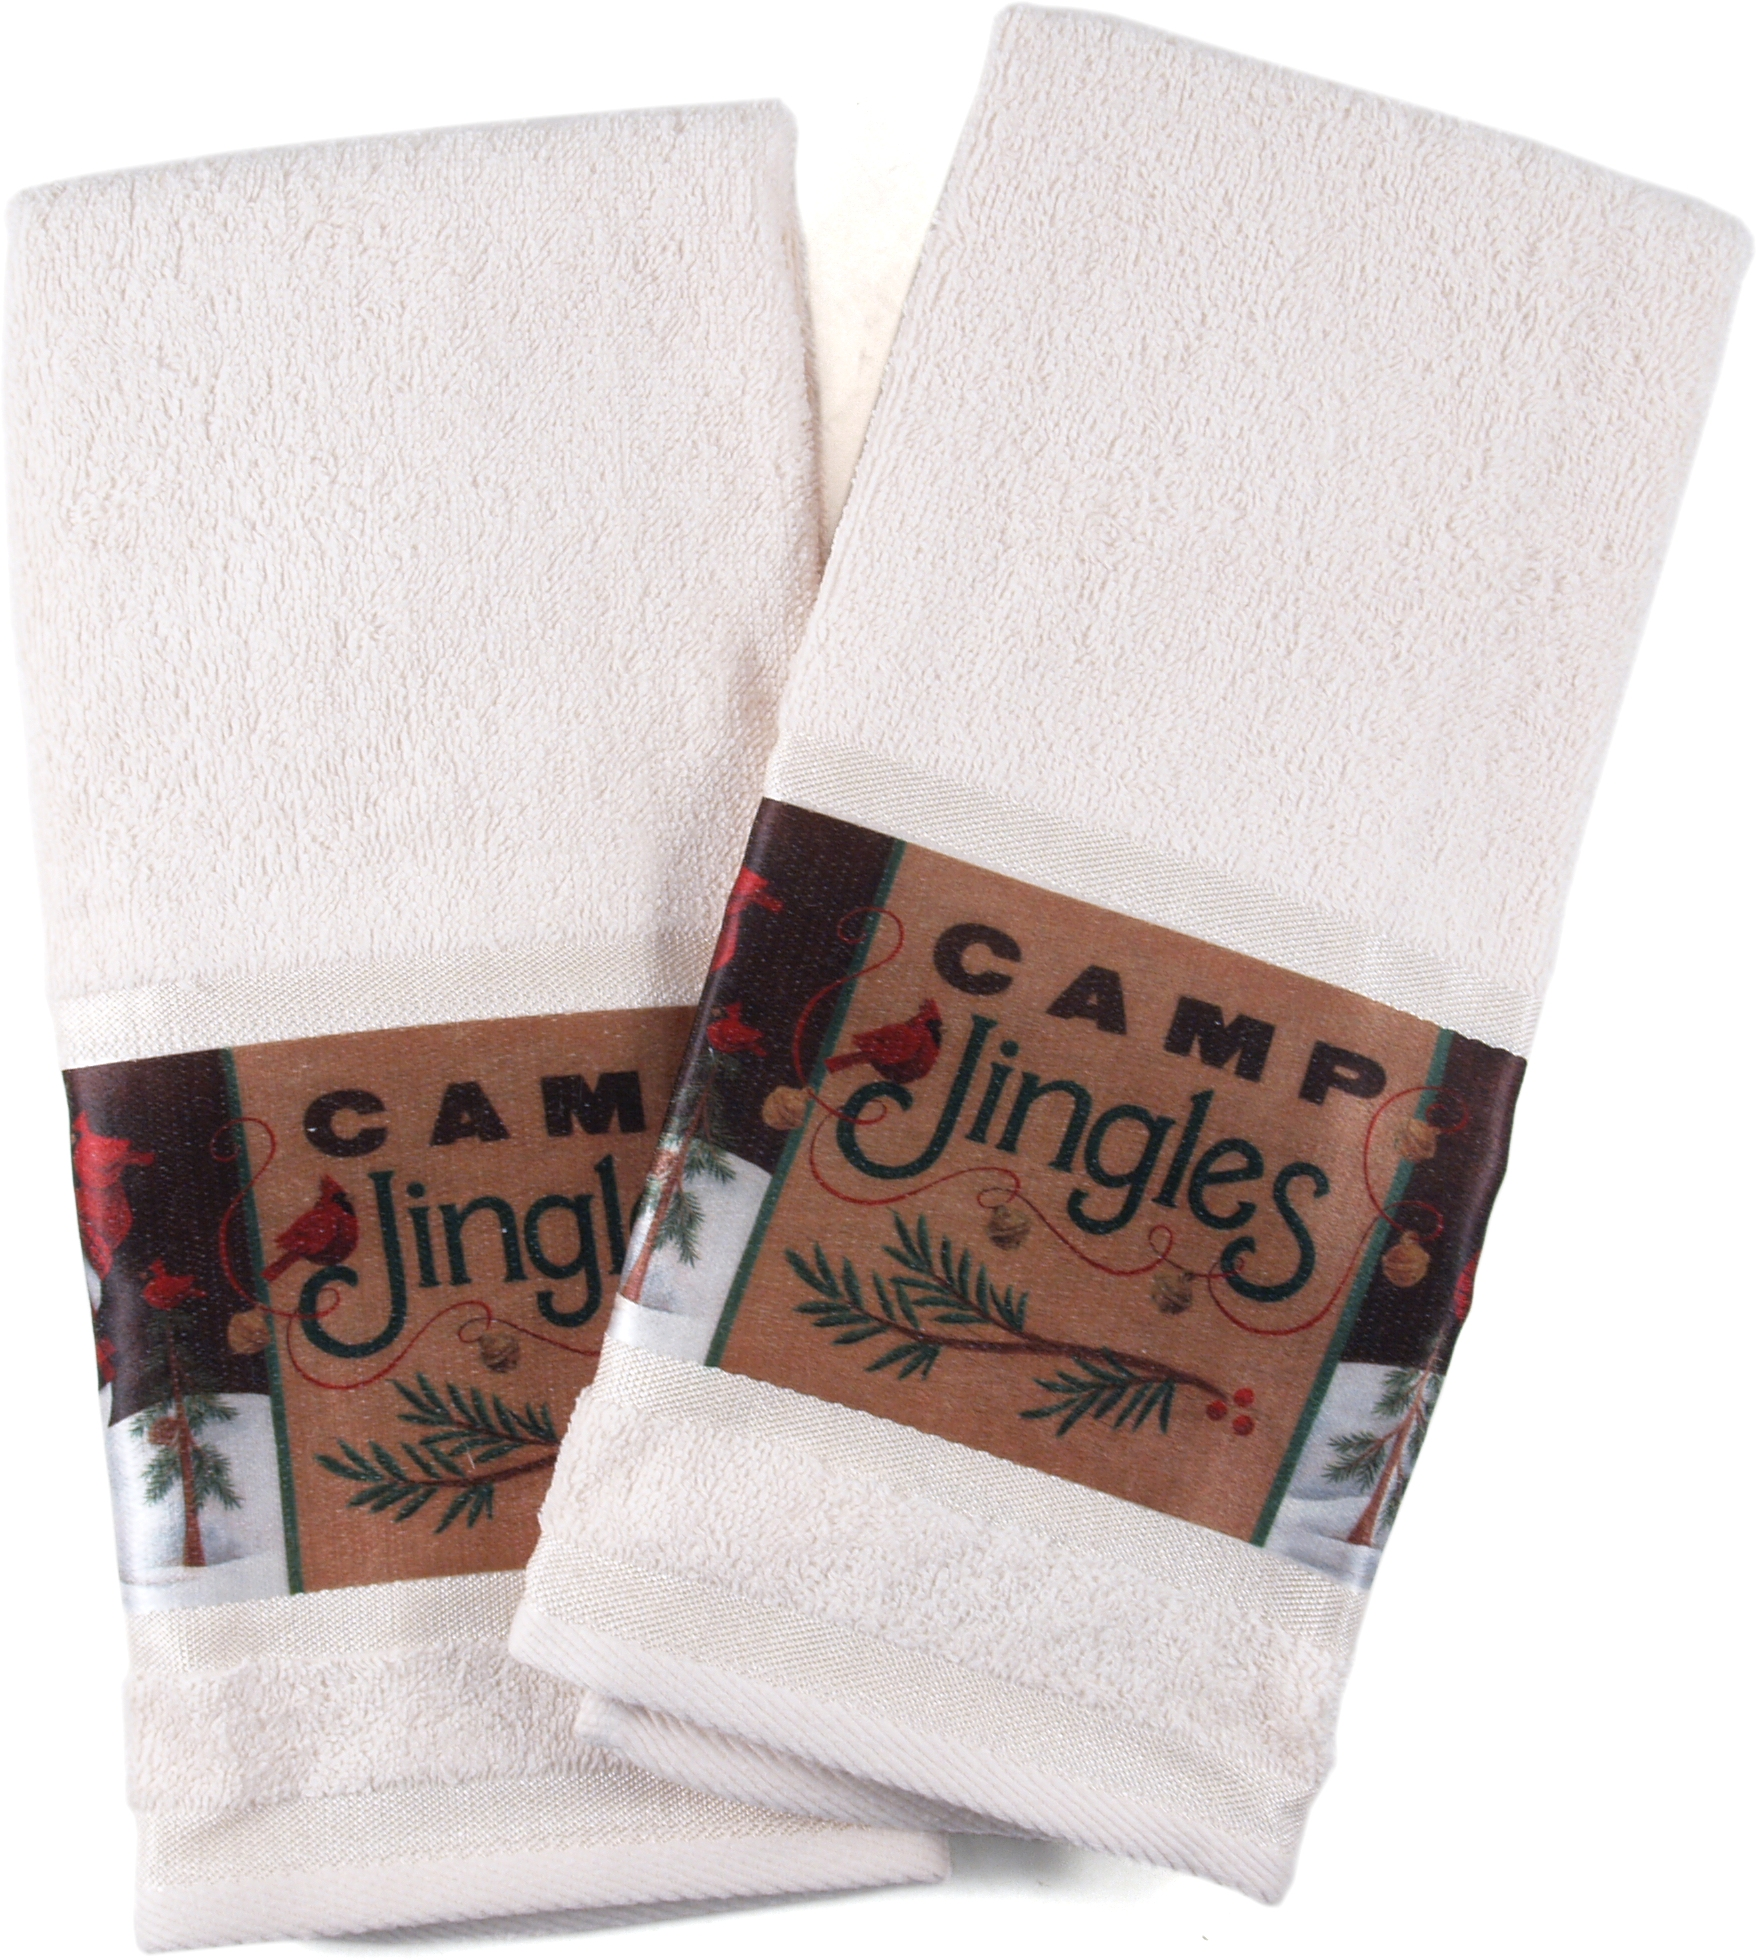 Camp Jingles Hand Towel, Set of 4